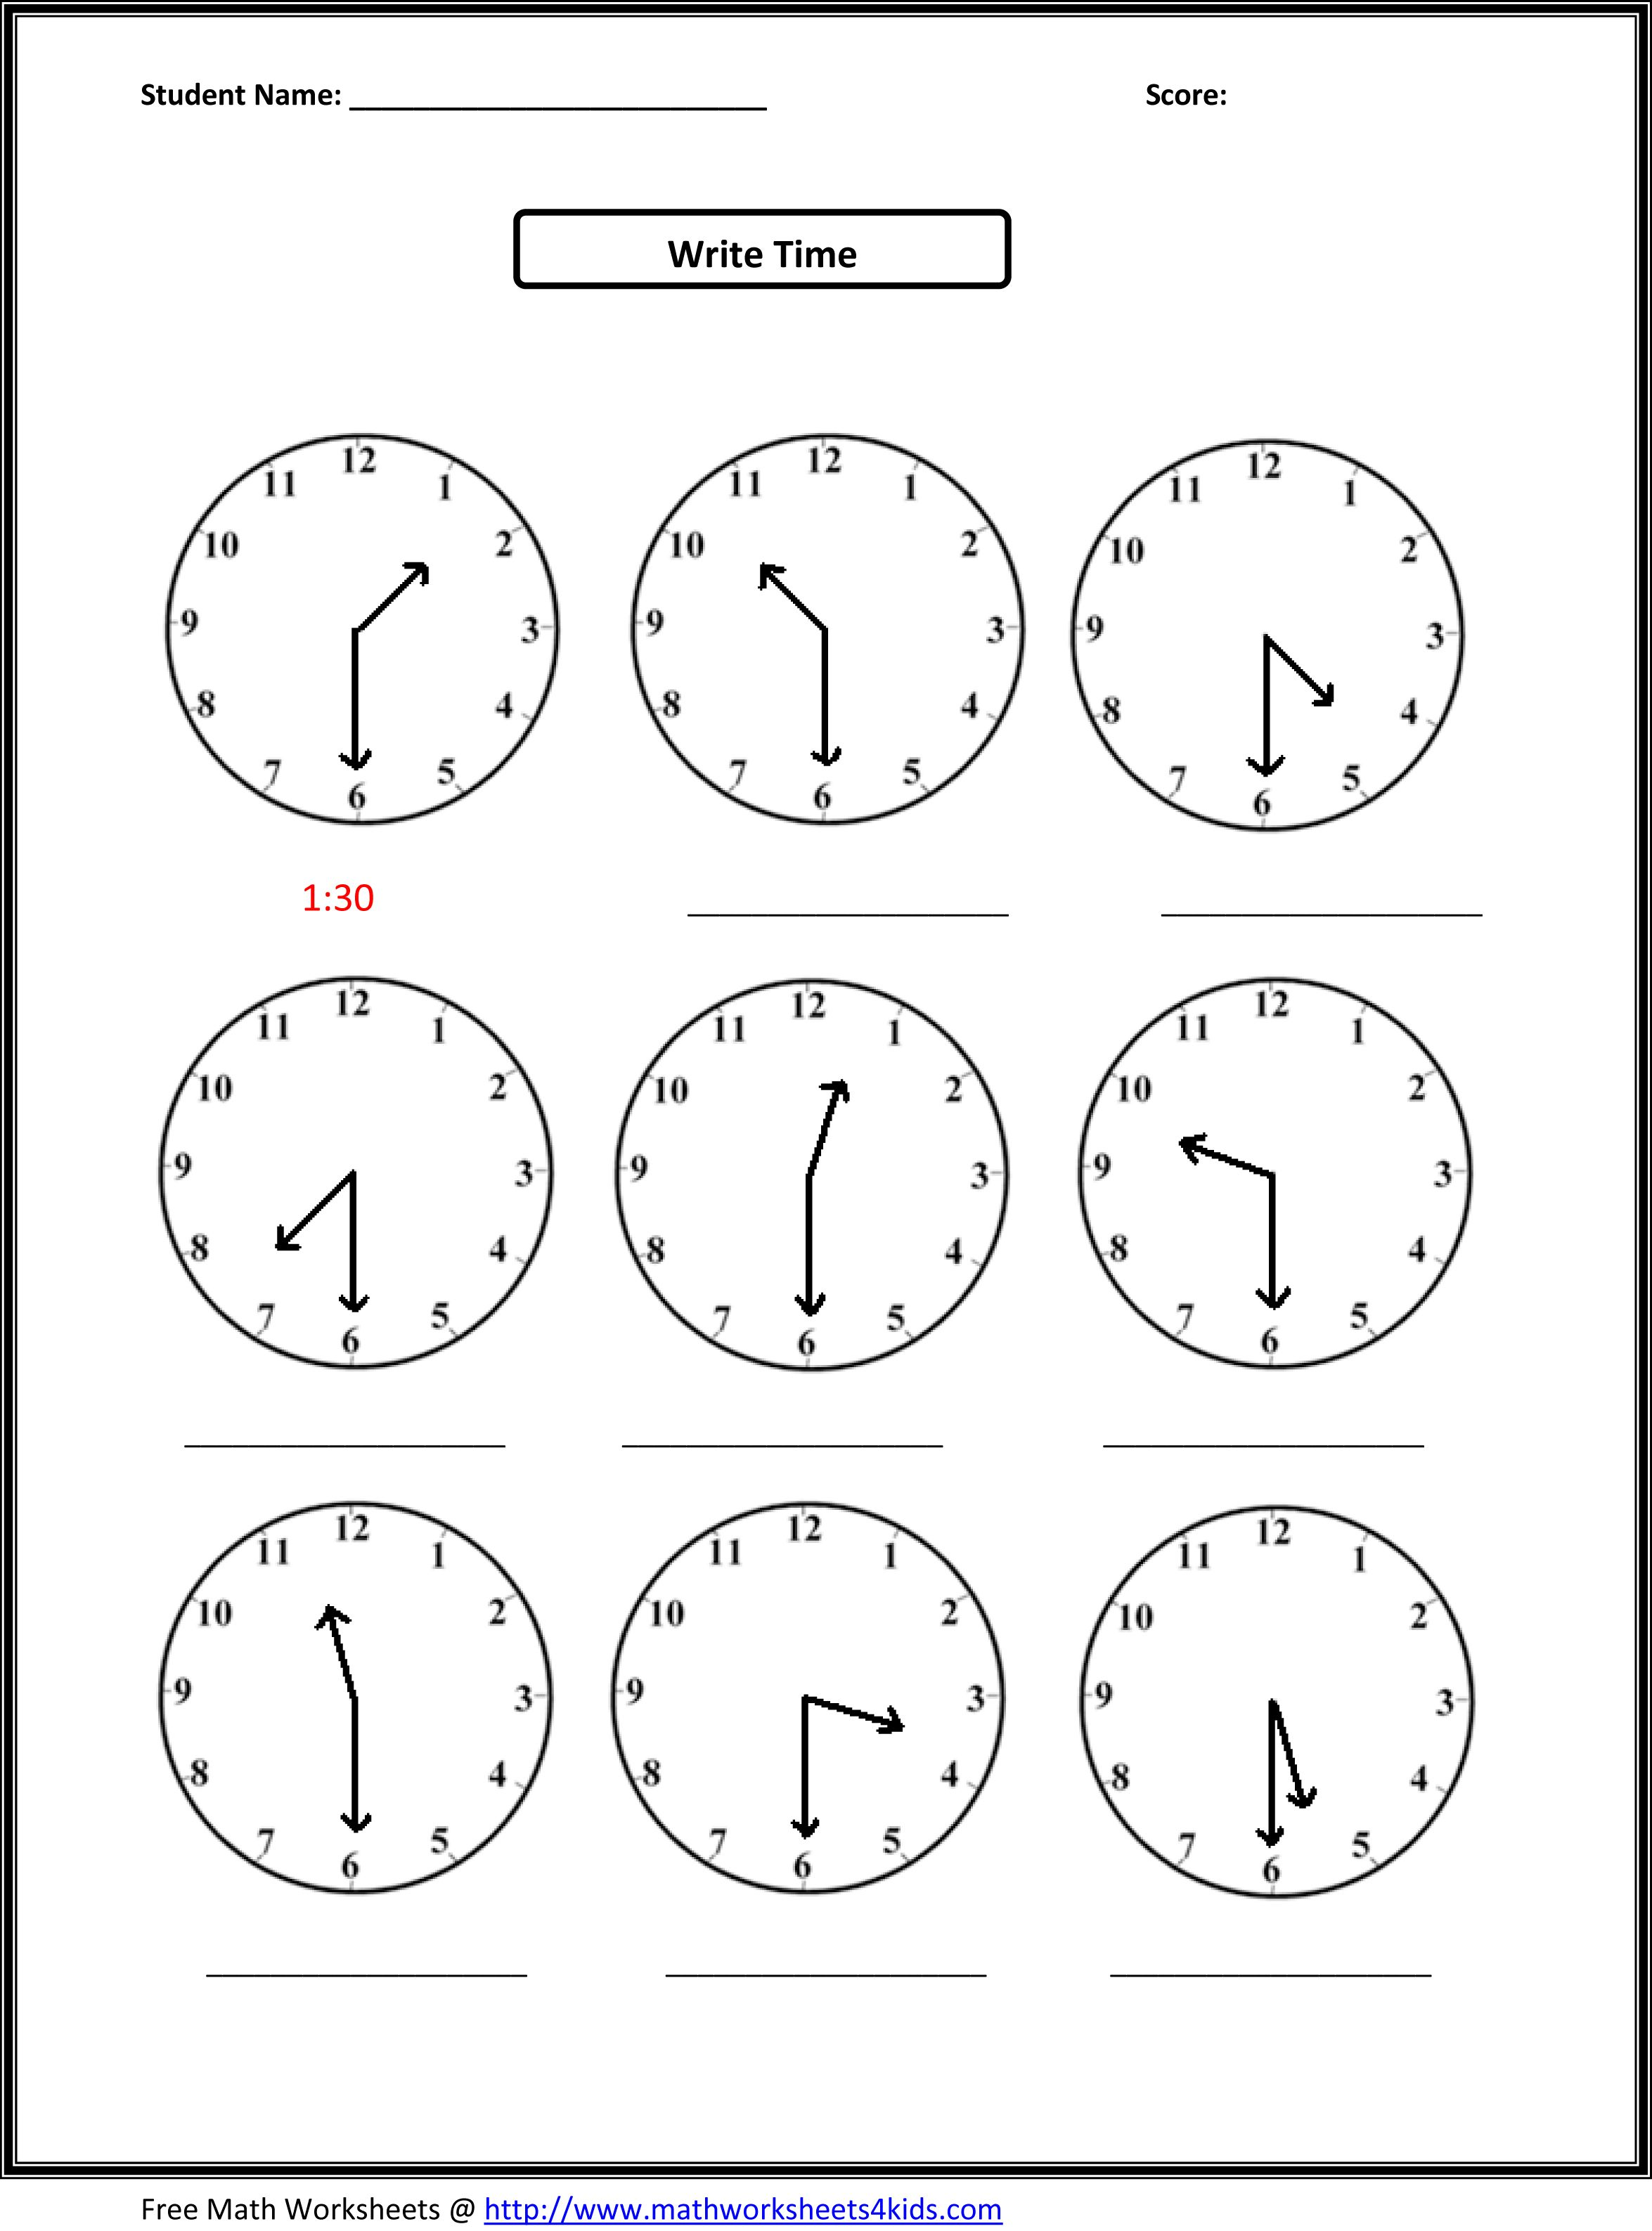 Weirdmailus  Prepossessing Worksheet On Time For Grade   Reocurent With Glamorous Free Printable Telling Time Worksheets Nd Grade  Reocurent With Cute Multiplying And Dividing Mixed Fractions Worksheets Also Reading Comprehension Worksheets Second Grade In Addition Counting Worksheets For Preschoolers And Punnet Square Worksheets As Well As Comprehension Reading Worksheets Additionally Compass Rose Worksheets From Reocurentcom With Weirdmailus  Glamorous Worksheet On Time For Grade   Reocurent With Cute Free Printable Telling Time Worksheets Nd Grade  Reocurent And Prepossessing Multiplying And Dividing Mixed Fractions Worksheets Also Reading Comprehension Worksheets Second Grade In Addition Counting Worksheets For Preschoolers From Reocurentcom